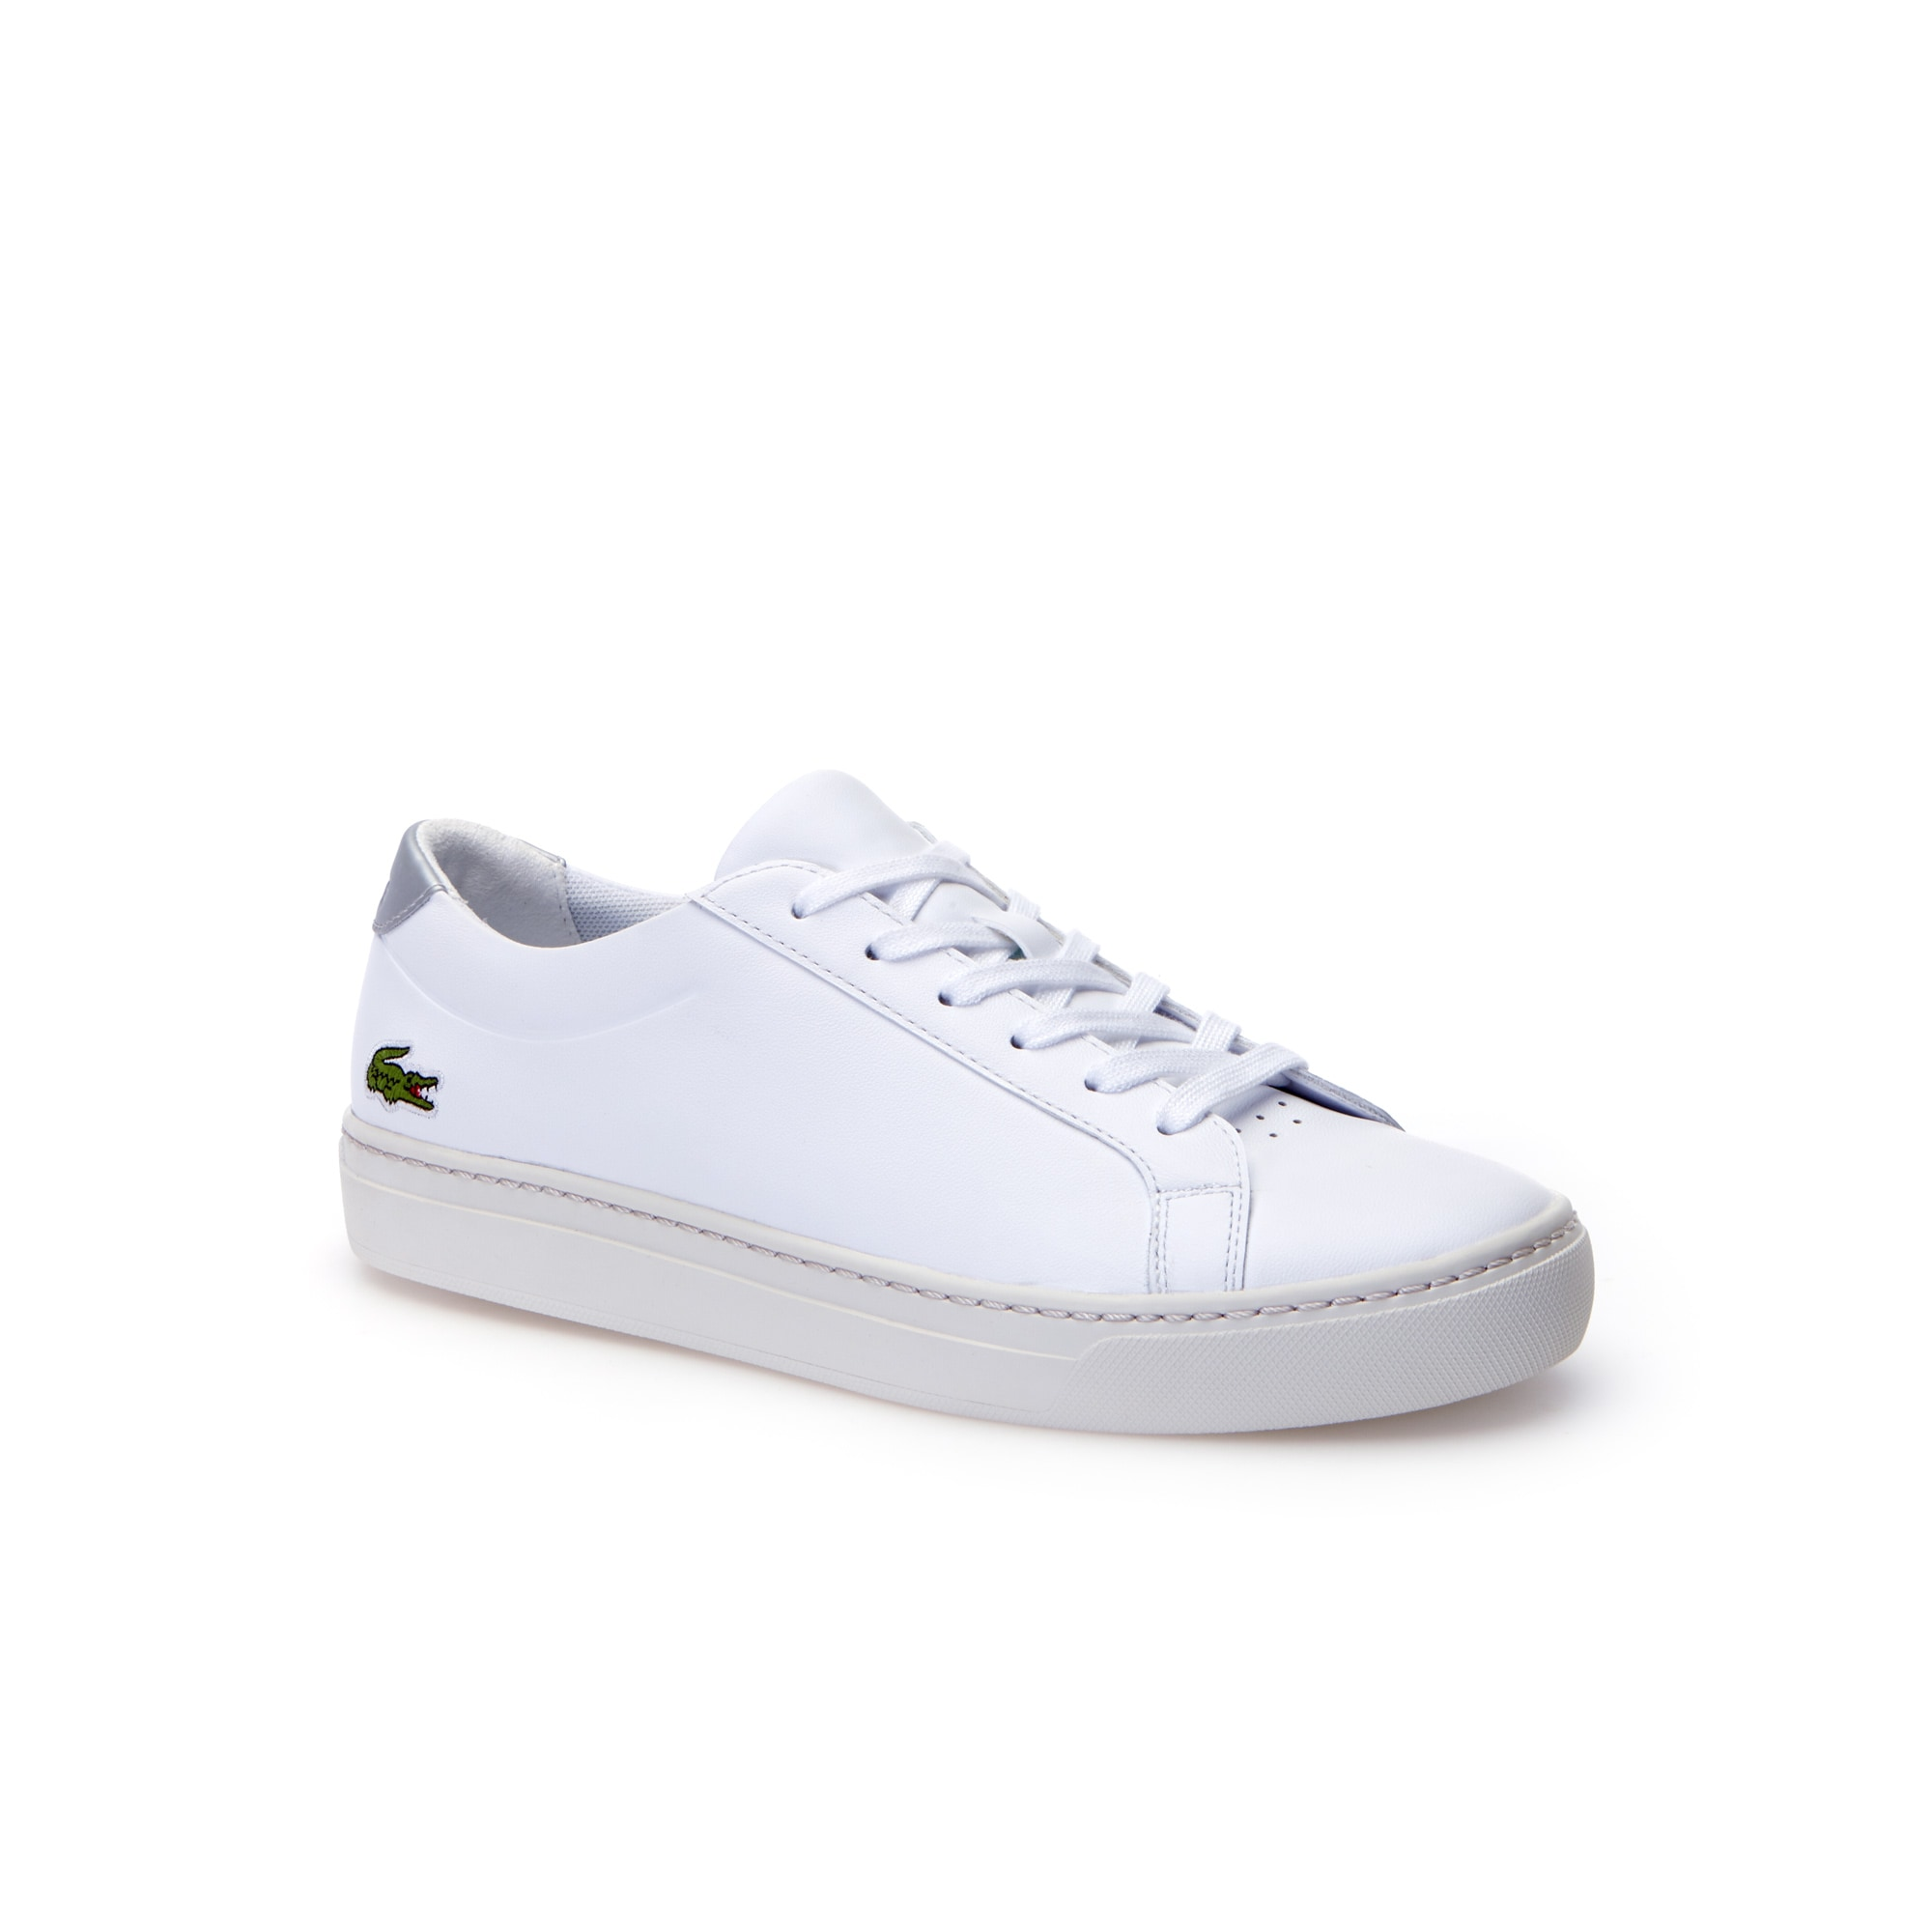 Kids' L.12.12 Leather Trainers by Lacoste